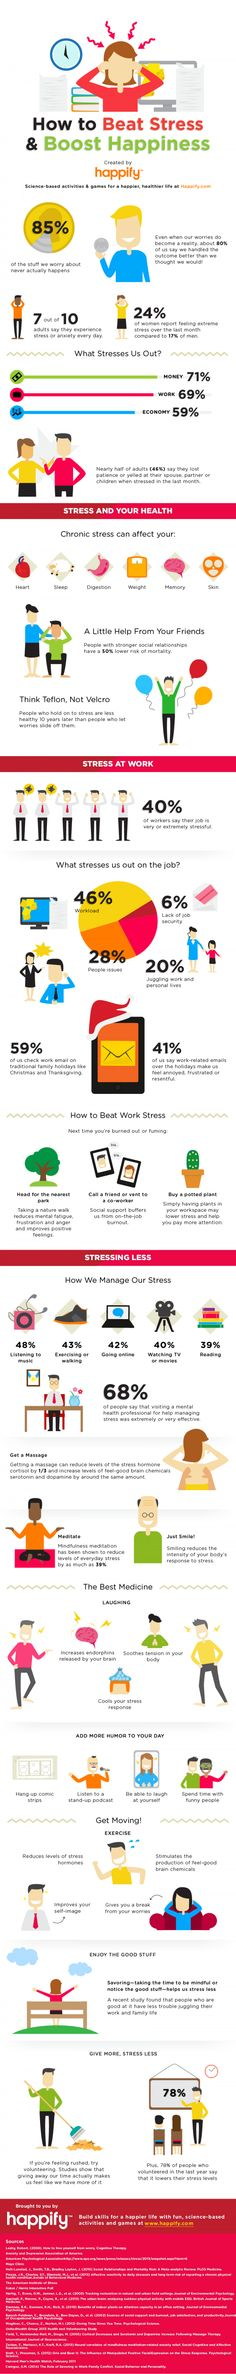 How to Replace Stress with Happiness (Infographic)